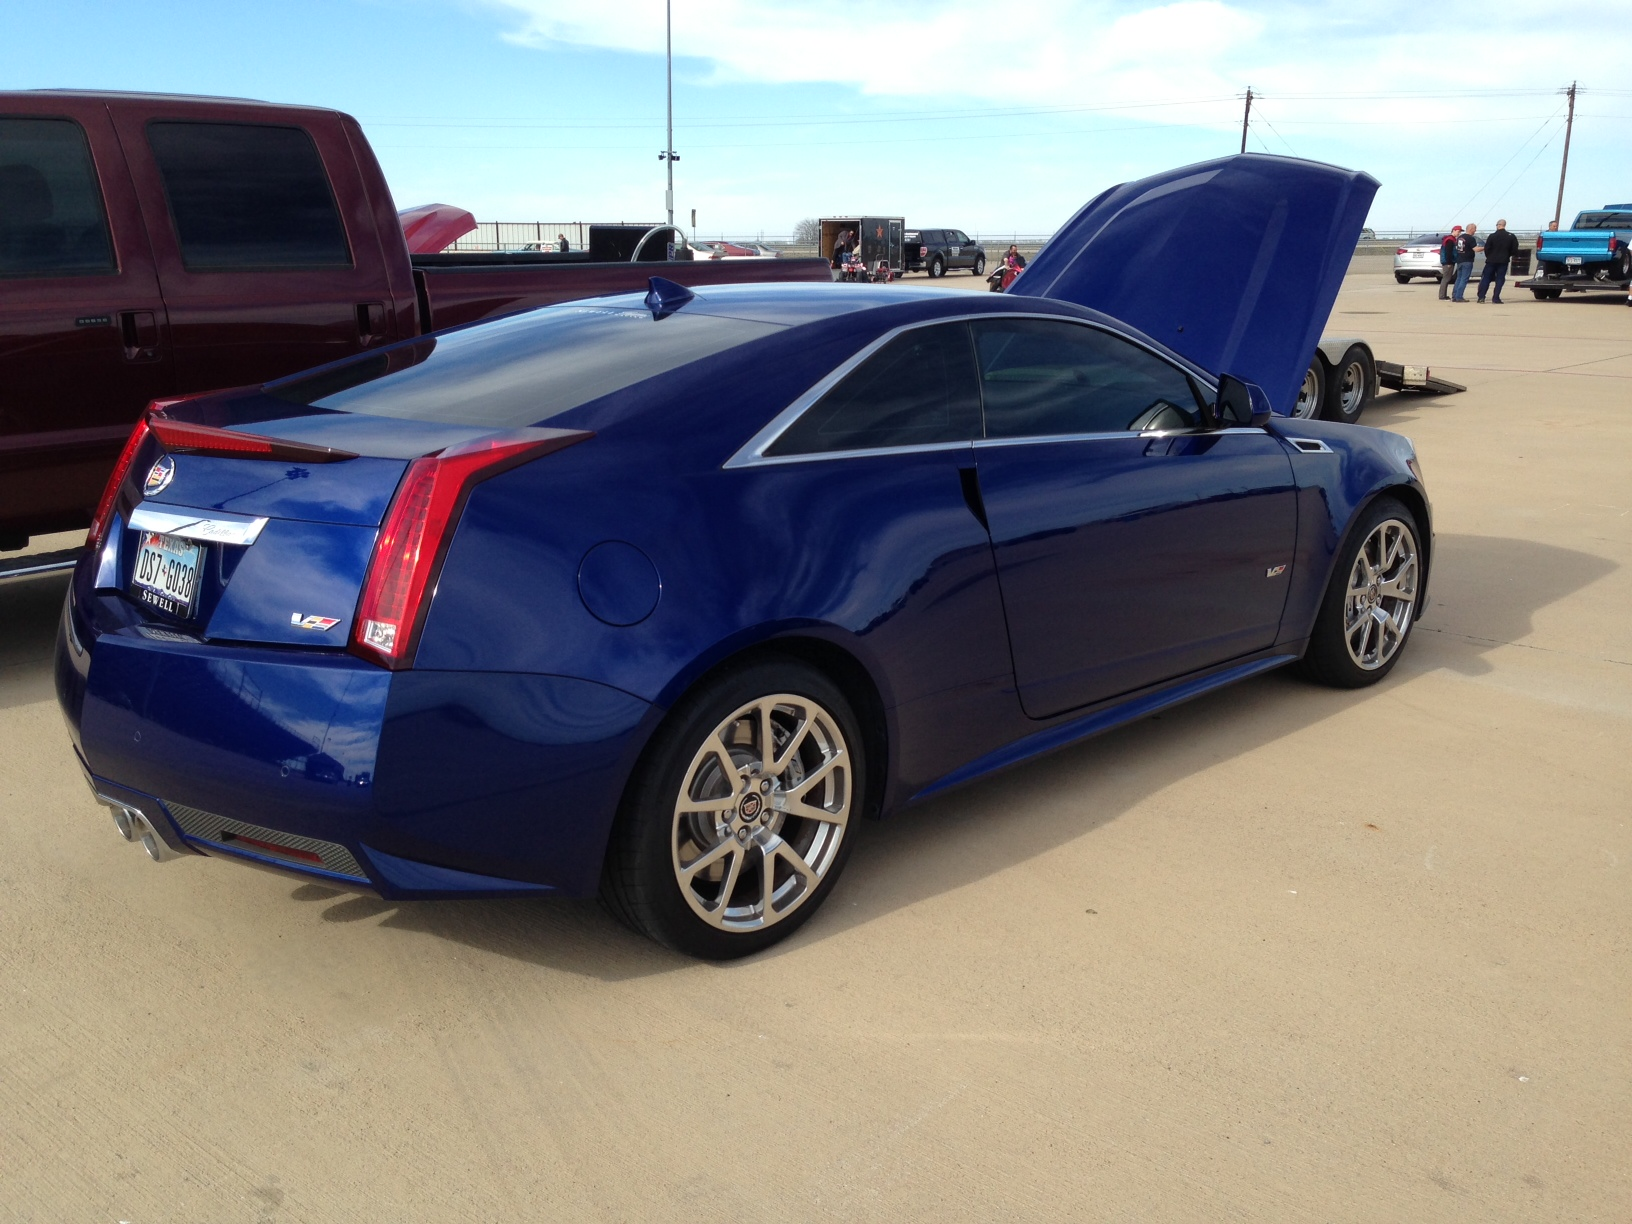 2012 Opulent Blue Cadillac CTS-V Coupe picture, mods, upgrades